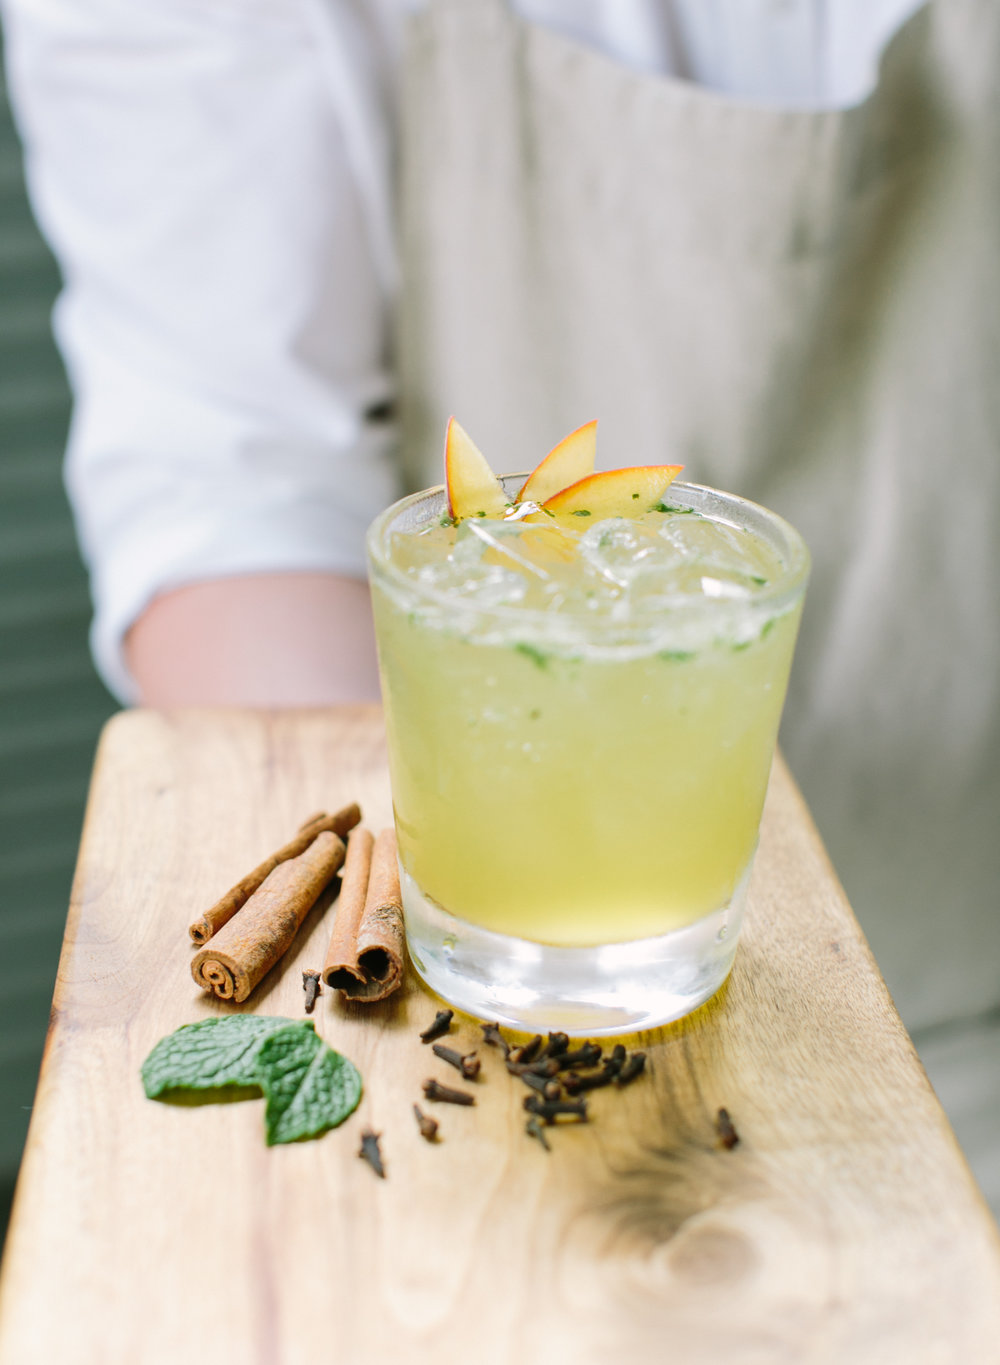 Front Porch Cooler - Glass – large rocks/old fashionedMethod – shake and strainGarnish – slapped mint sprig; thin peach slices2 oz. bourbon whiskey.75 oz. velvet falernum liqueur1 oz. fresh lemon juice.5 oz. bar syrup3 healthy dashes peach bitters8 mint leaves